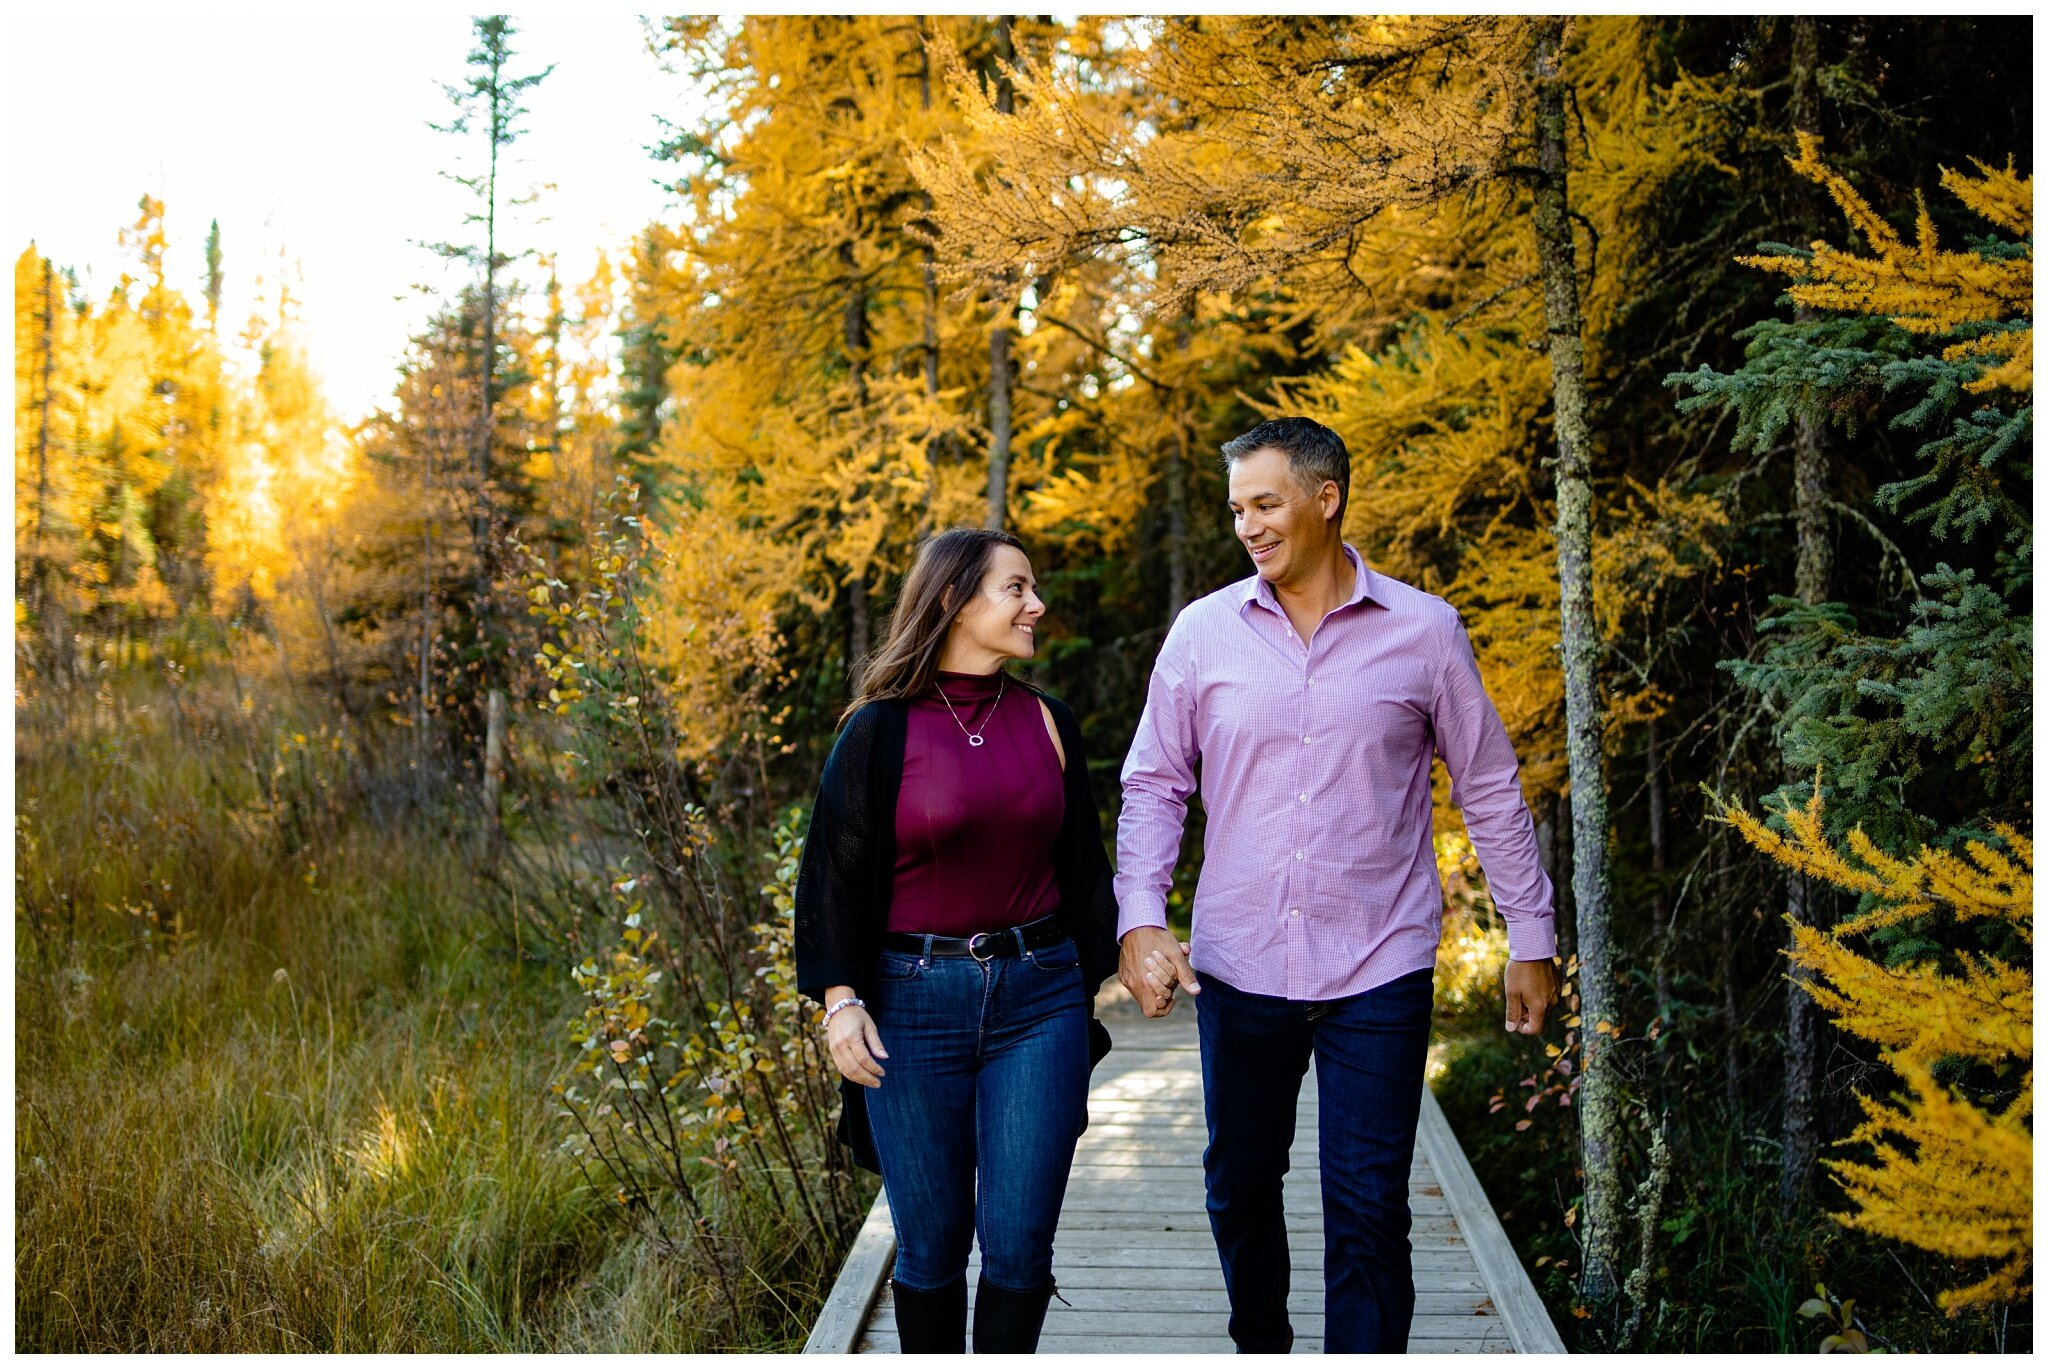 Wagner Natural Area Acheson couples Photographer Alberta  engagement older couple romantic fall photos_0018.jpg